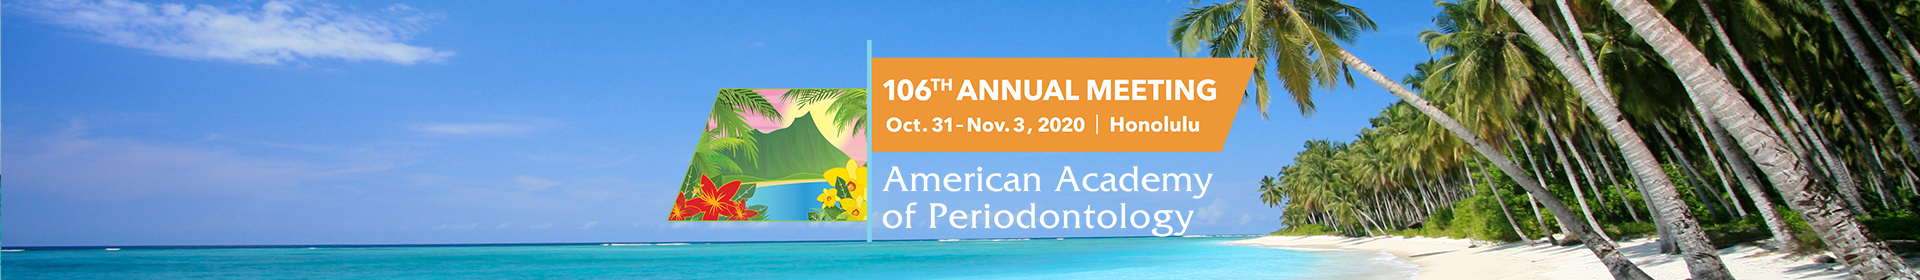 106th Annual Meeting Event Banner